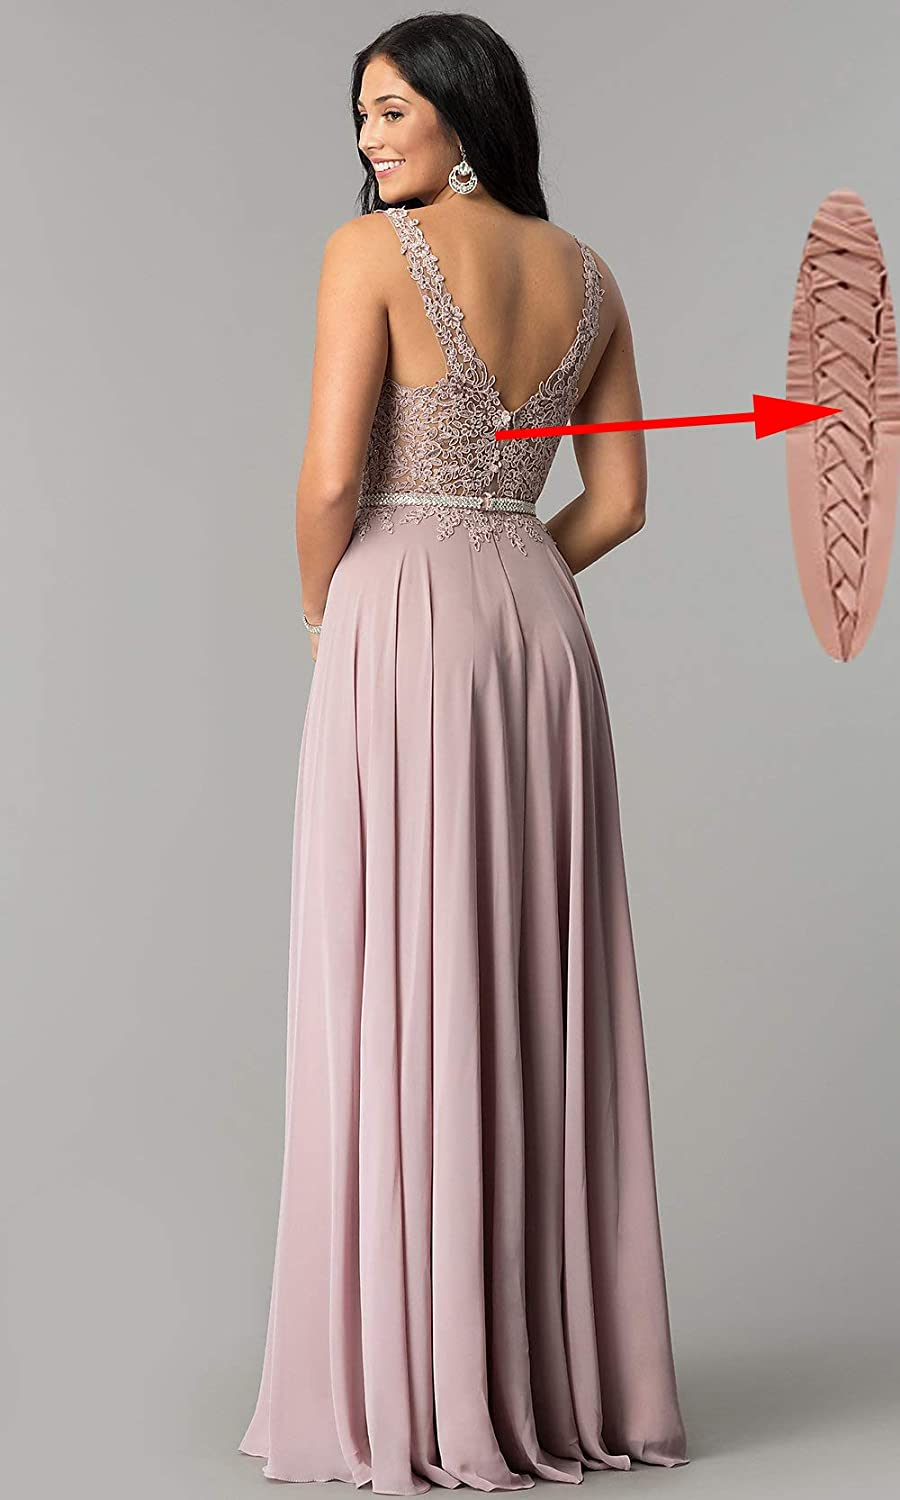 Women's A Line V Neck Lace Bodice Chiffon Prom Dresses Long Formal Evening Gown Dusty Pink